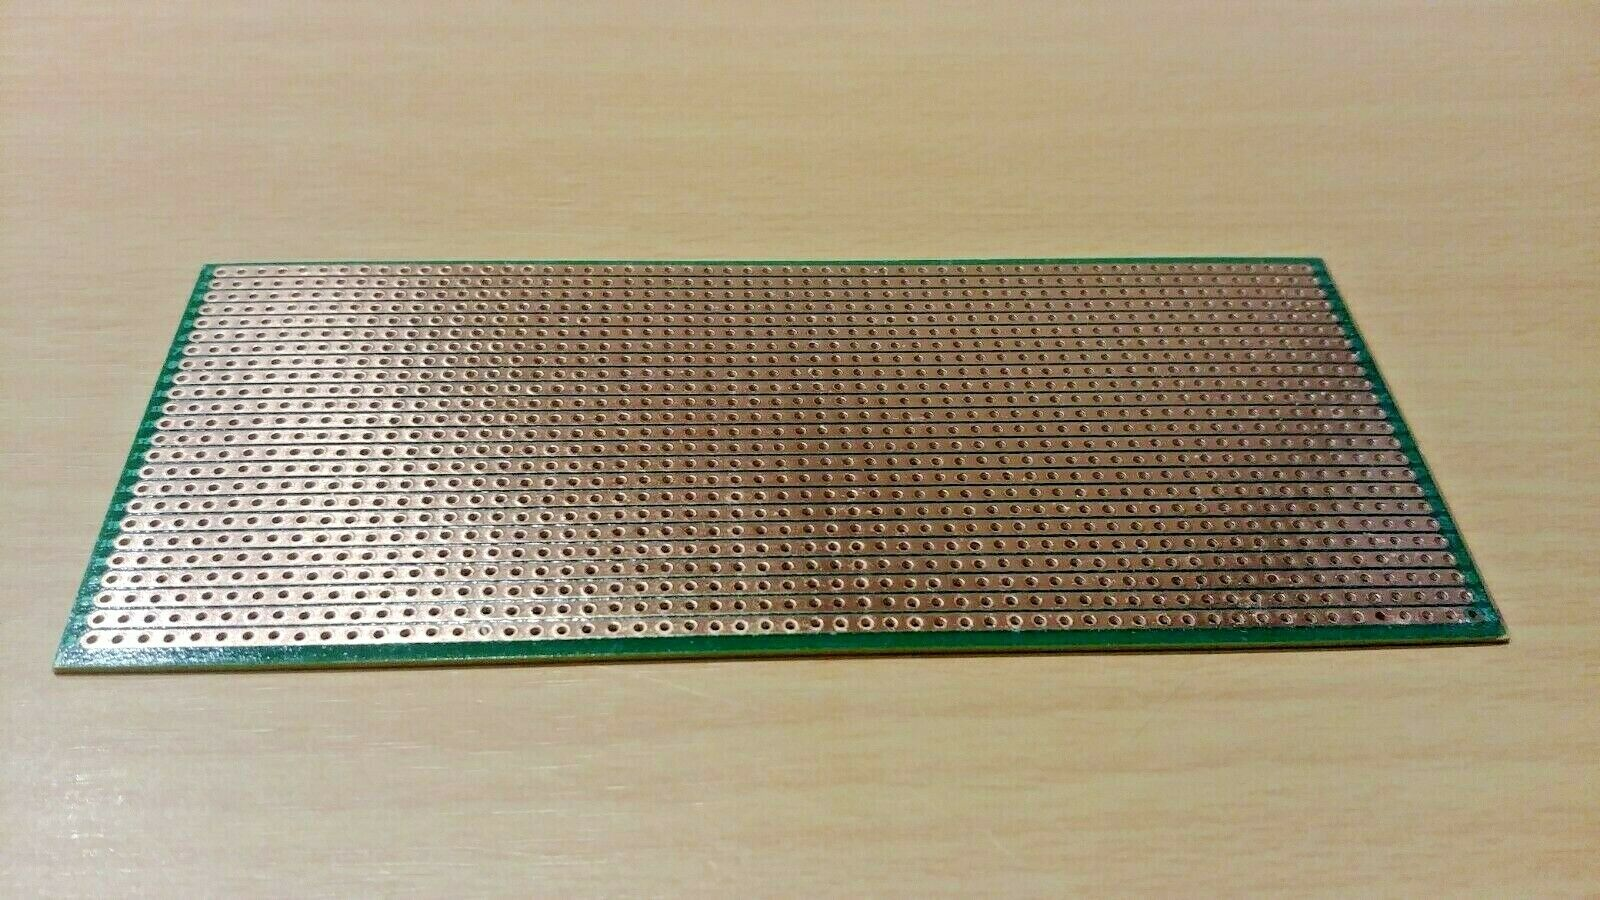 Best Circuit Board Deals Compare Prices On About Plain 95 X 128mm Srbp Electronic Prototype Matrix